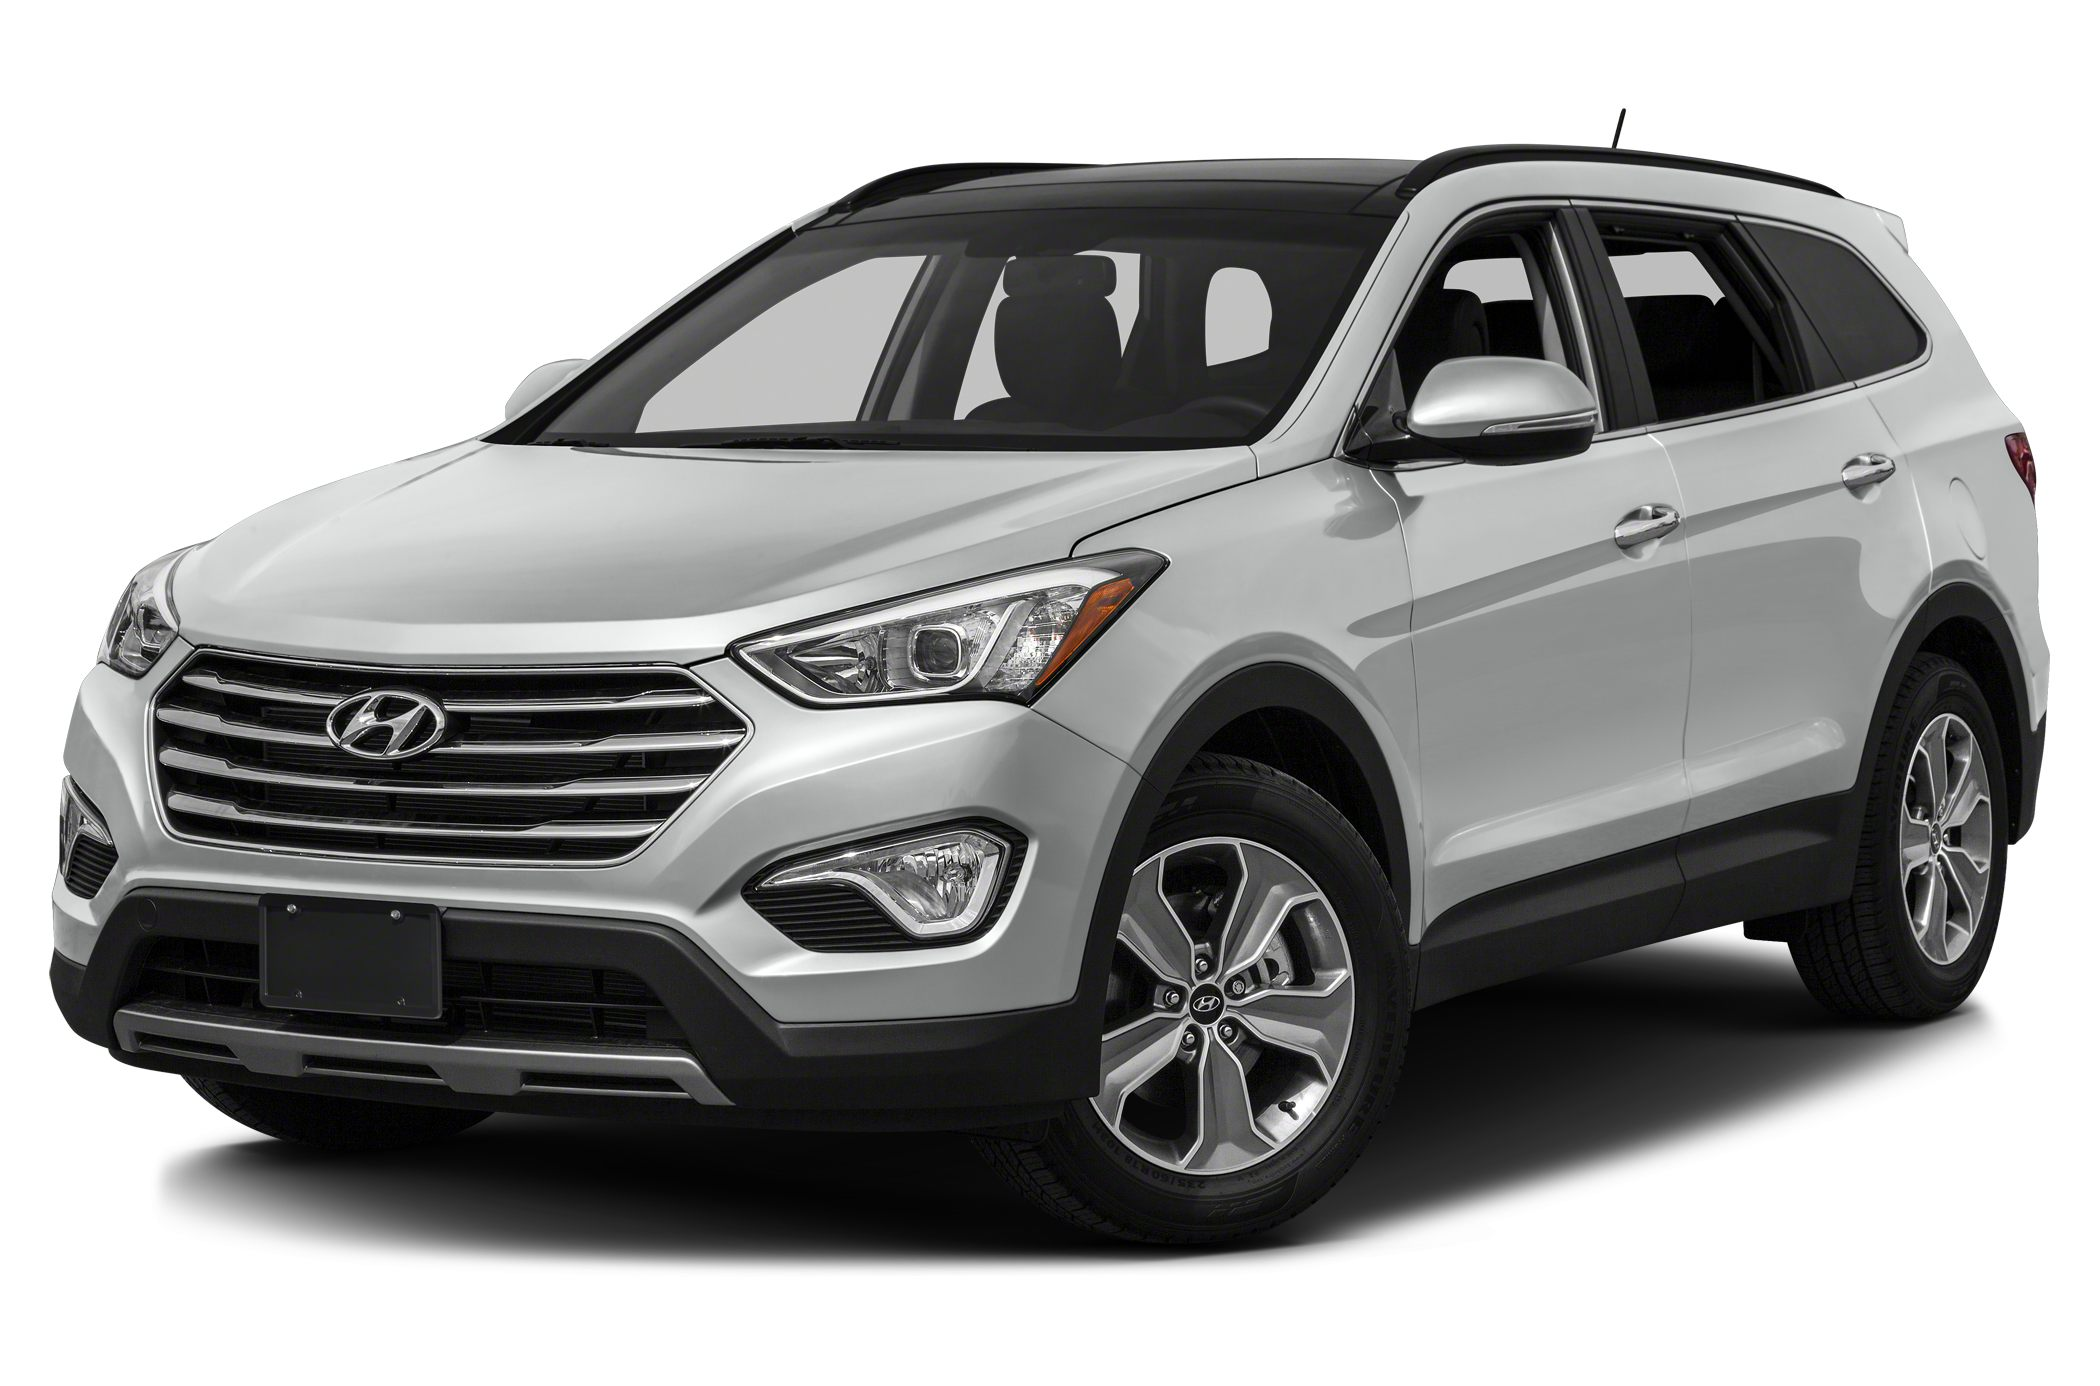 2015 Hyundai Santa Fe Limited SUV for sale in Rockford for $42,425 with 10 miles.